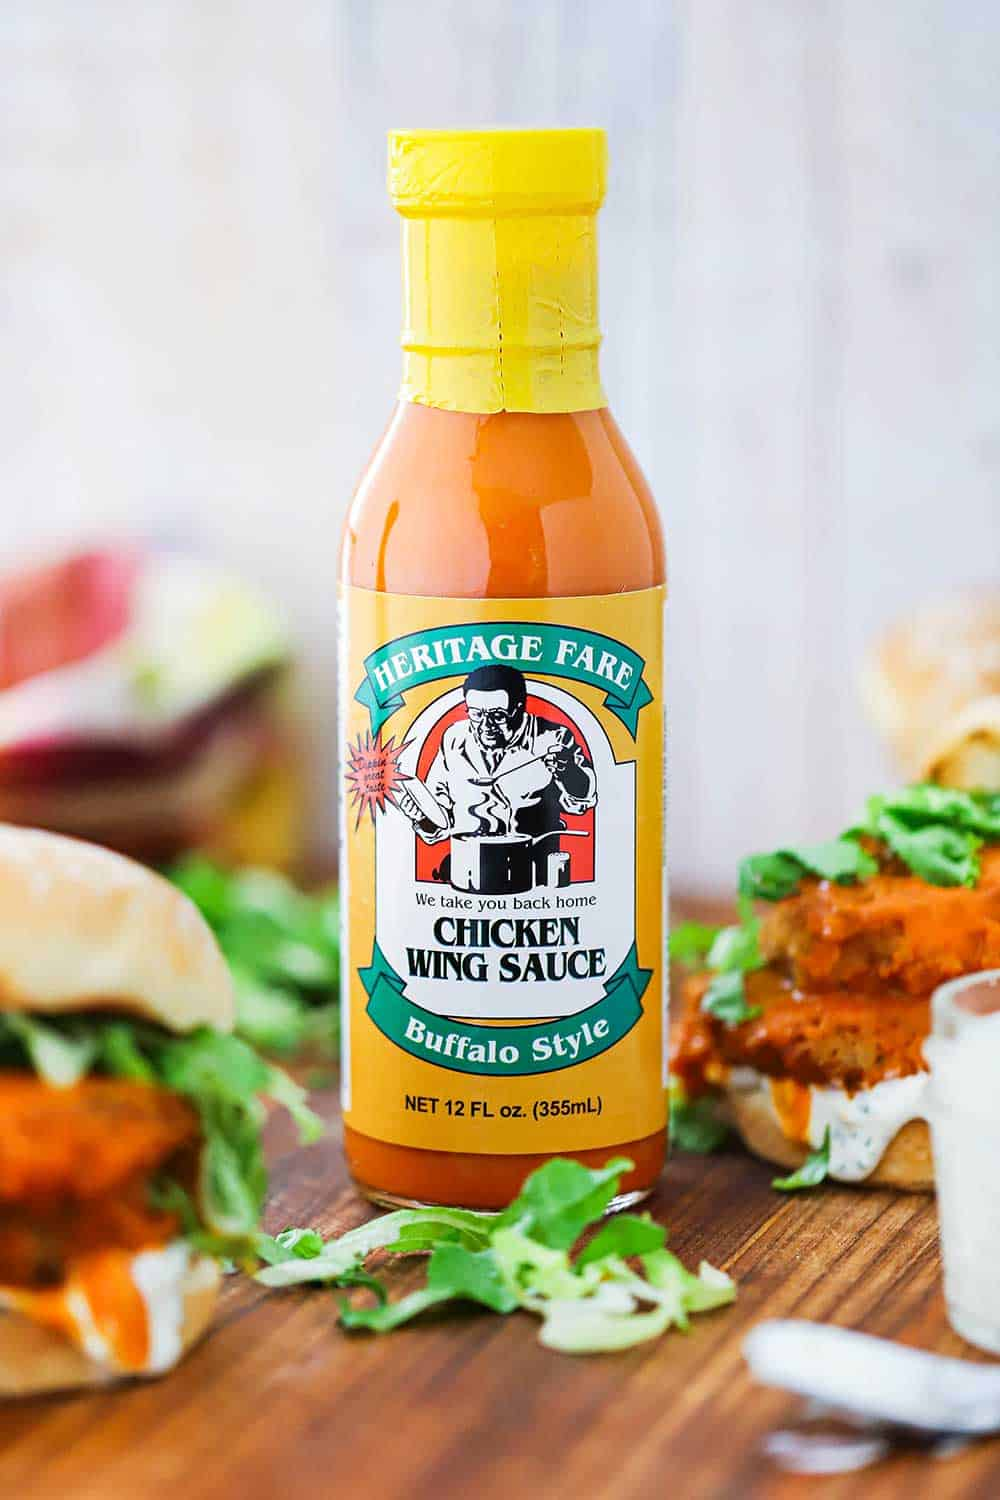 A bottle of Heritage Fare Buffalo Chicken Wing sauce next to a buffalo chicken sandwich on a cutting board.